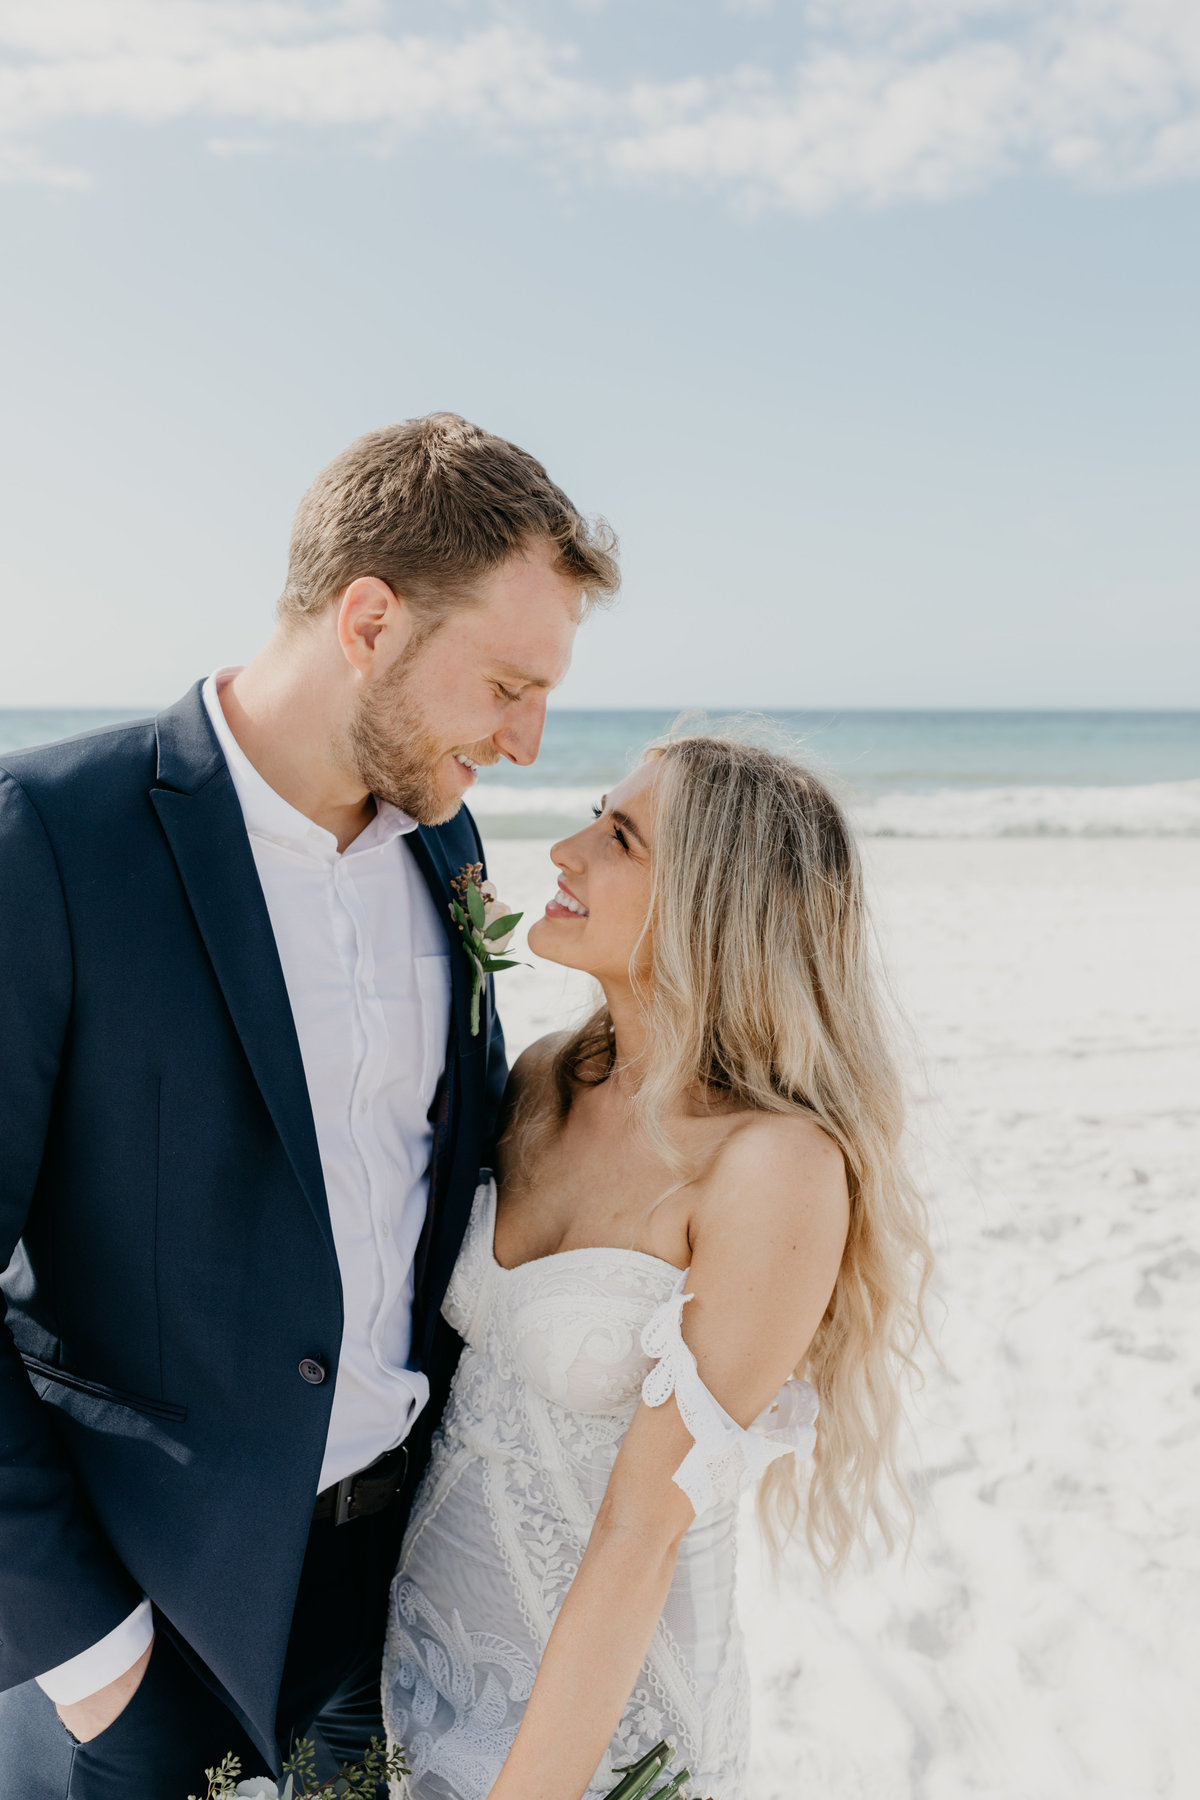 Ash-Simmons-Photography-Pensacola-Beach-Wedding-3892